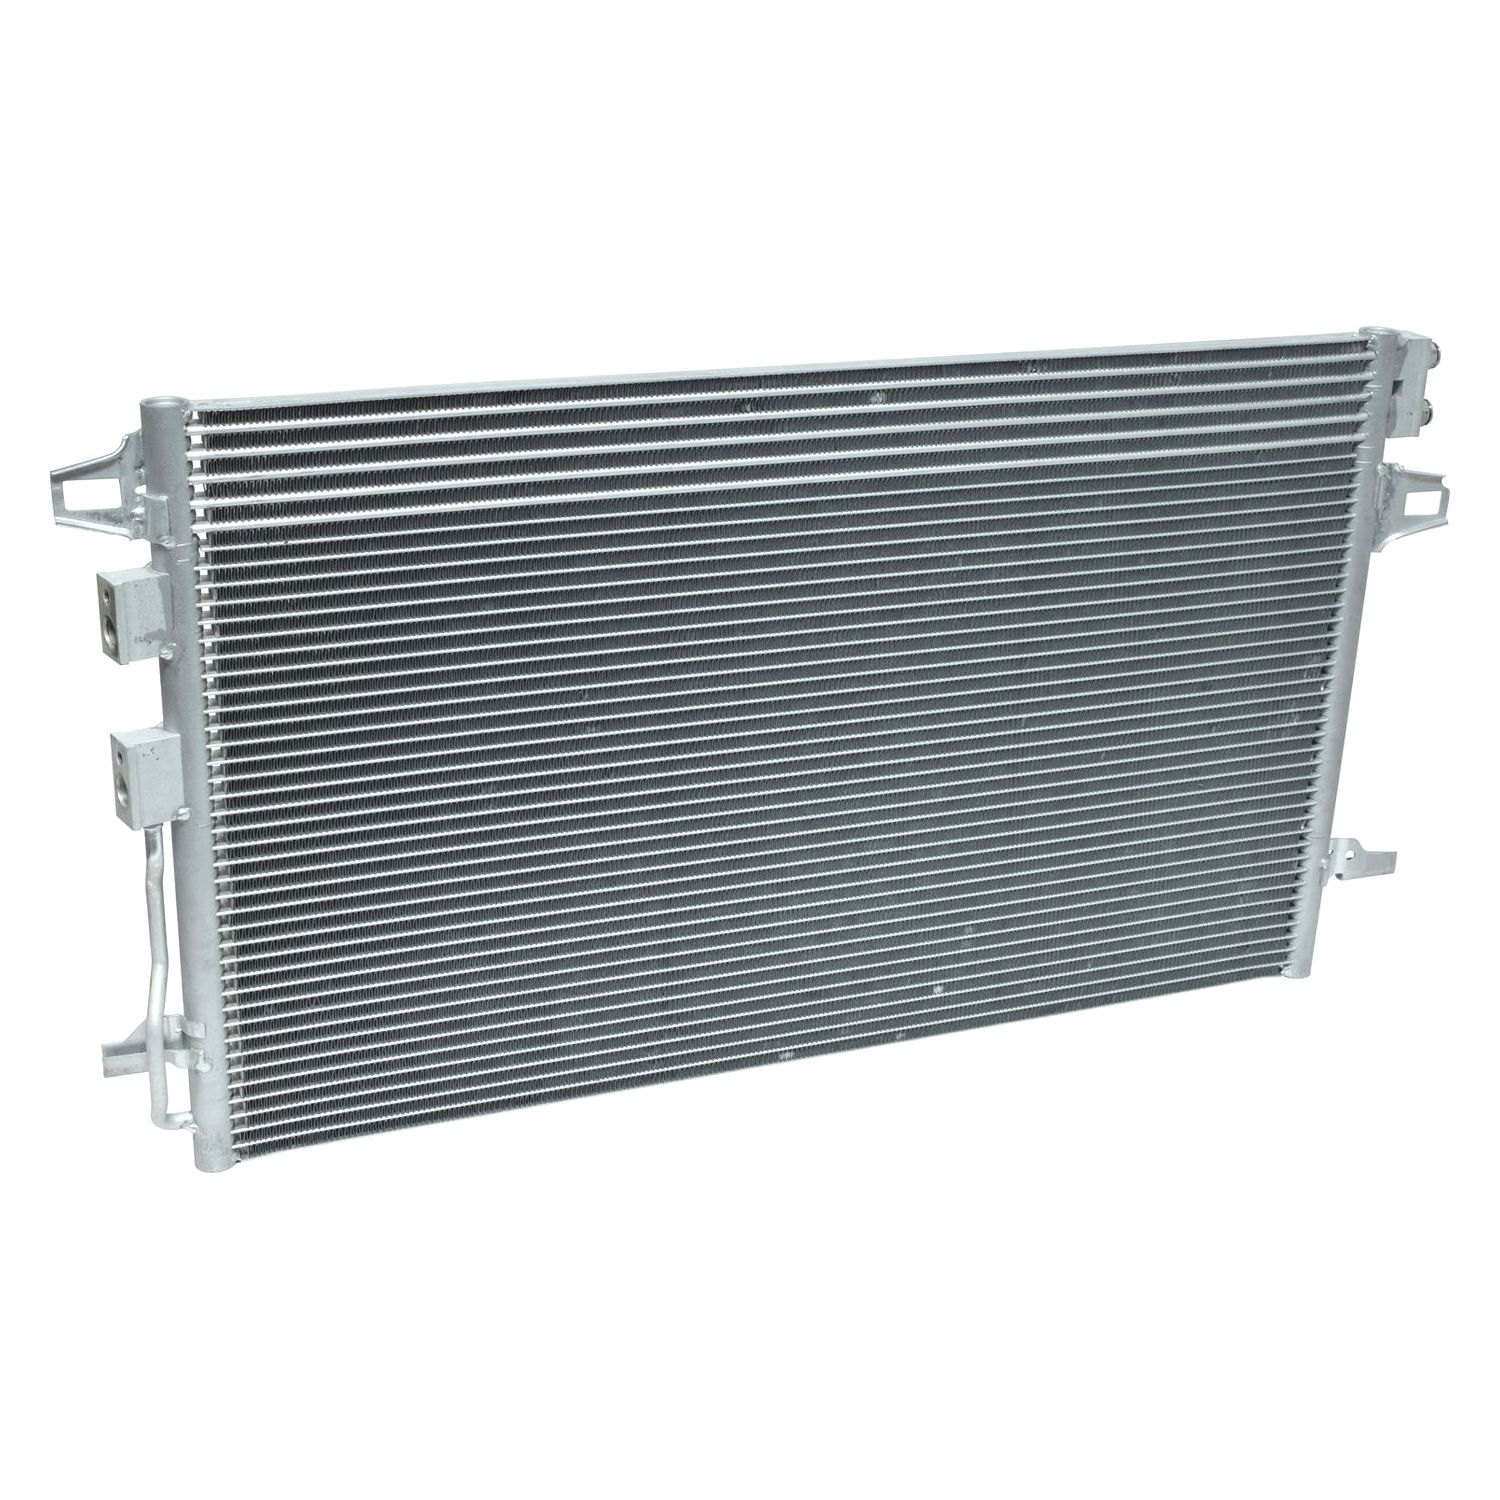 TYC 3320 A//C Condenser Assembly for Dodge Caravan 2005-2007 Models